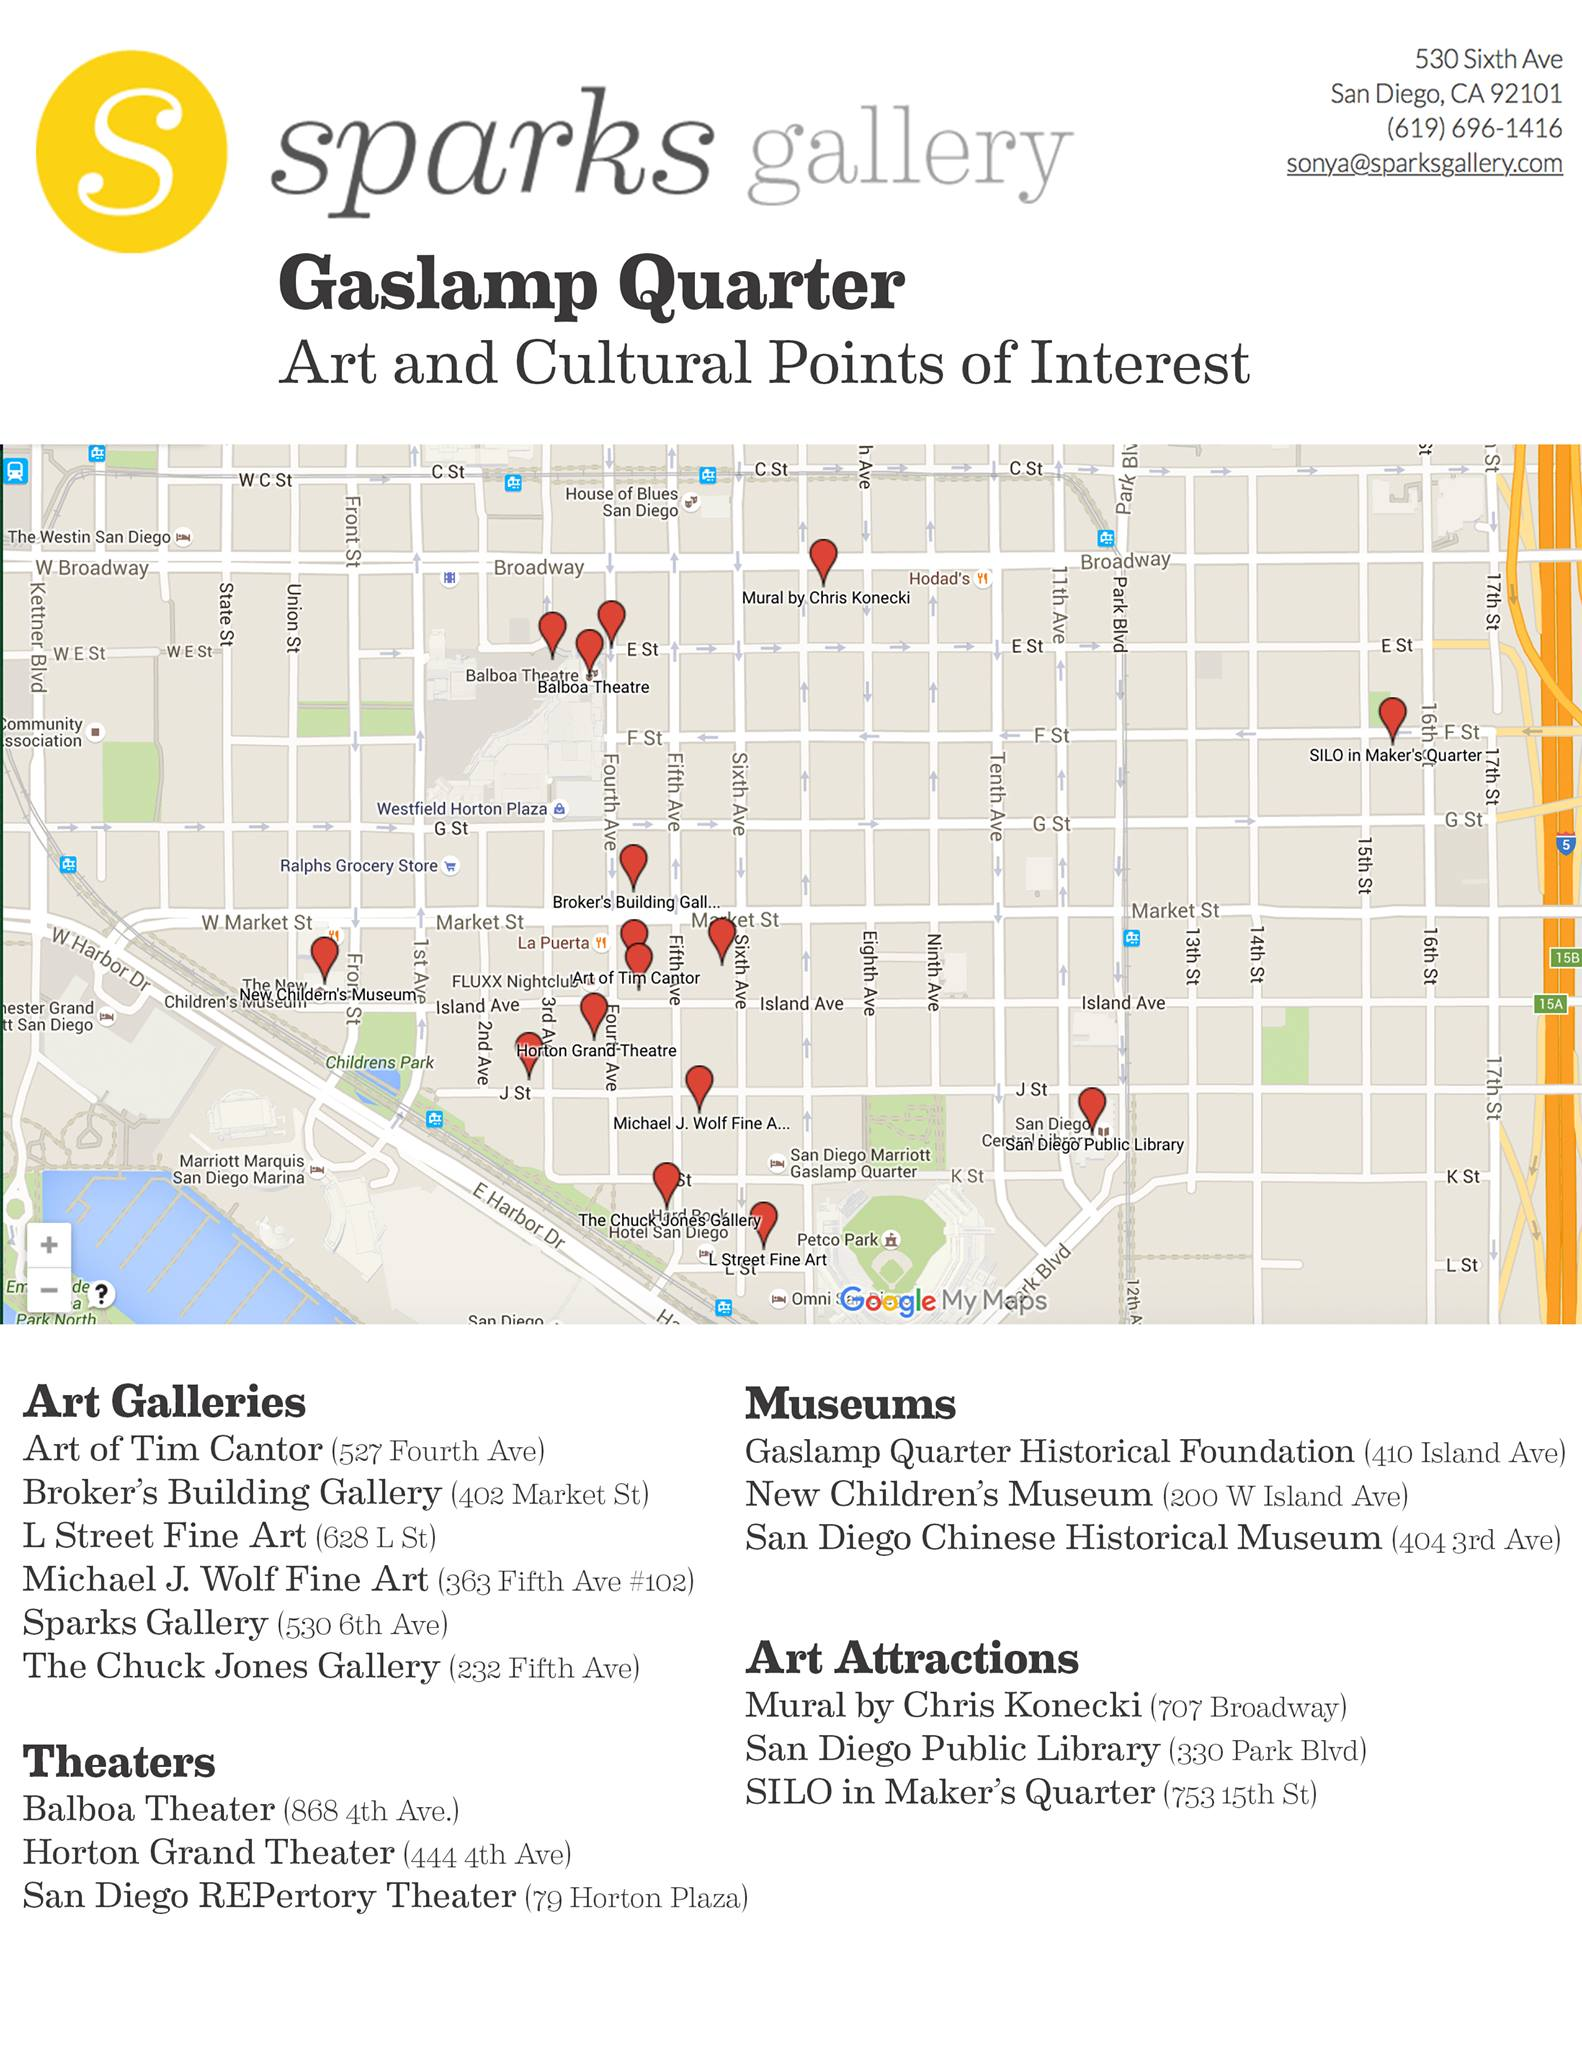 Gaslamp Quarter Arts & Culture Destinations